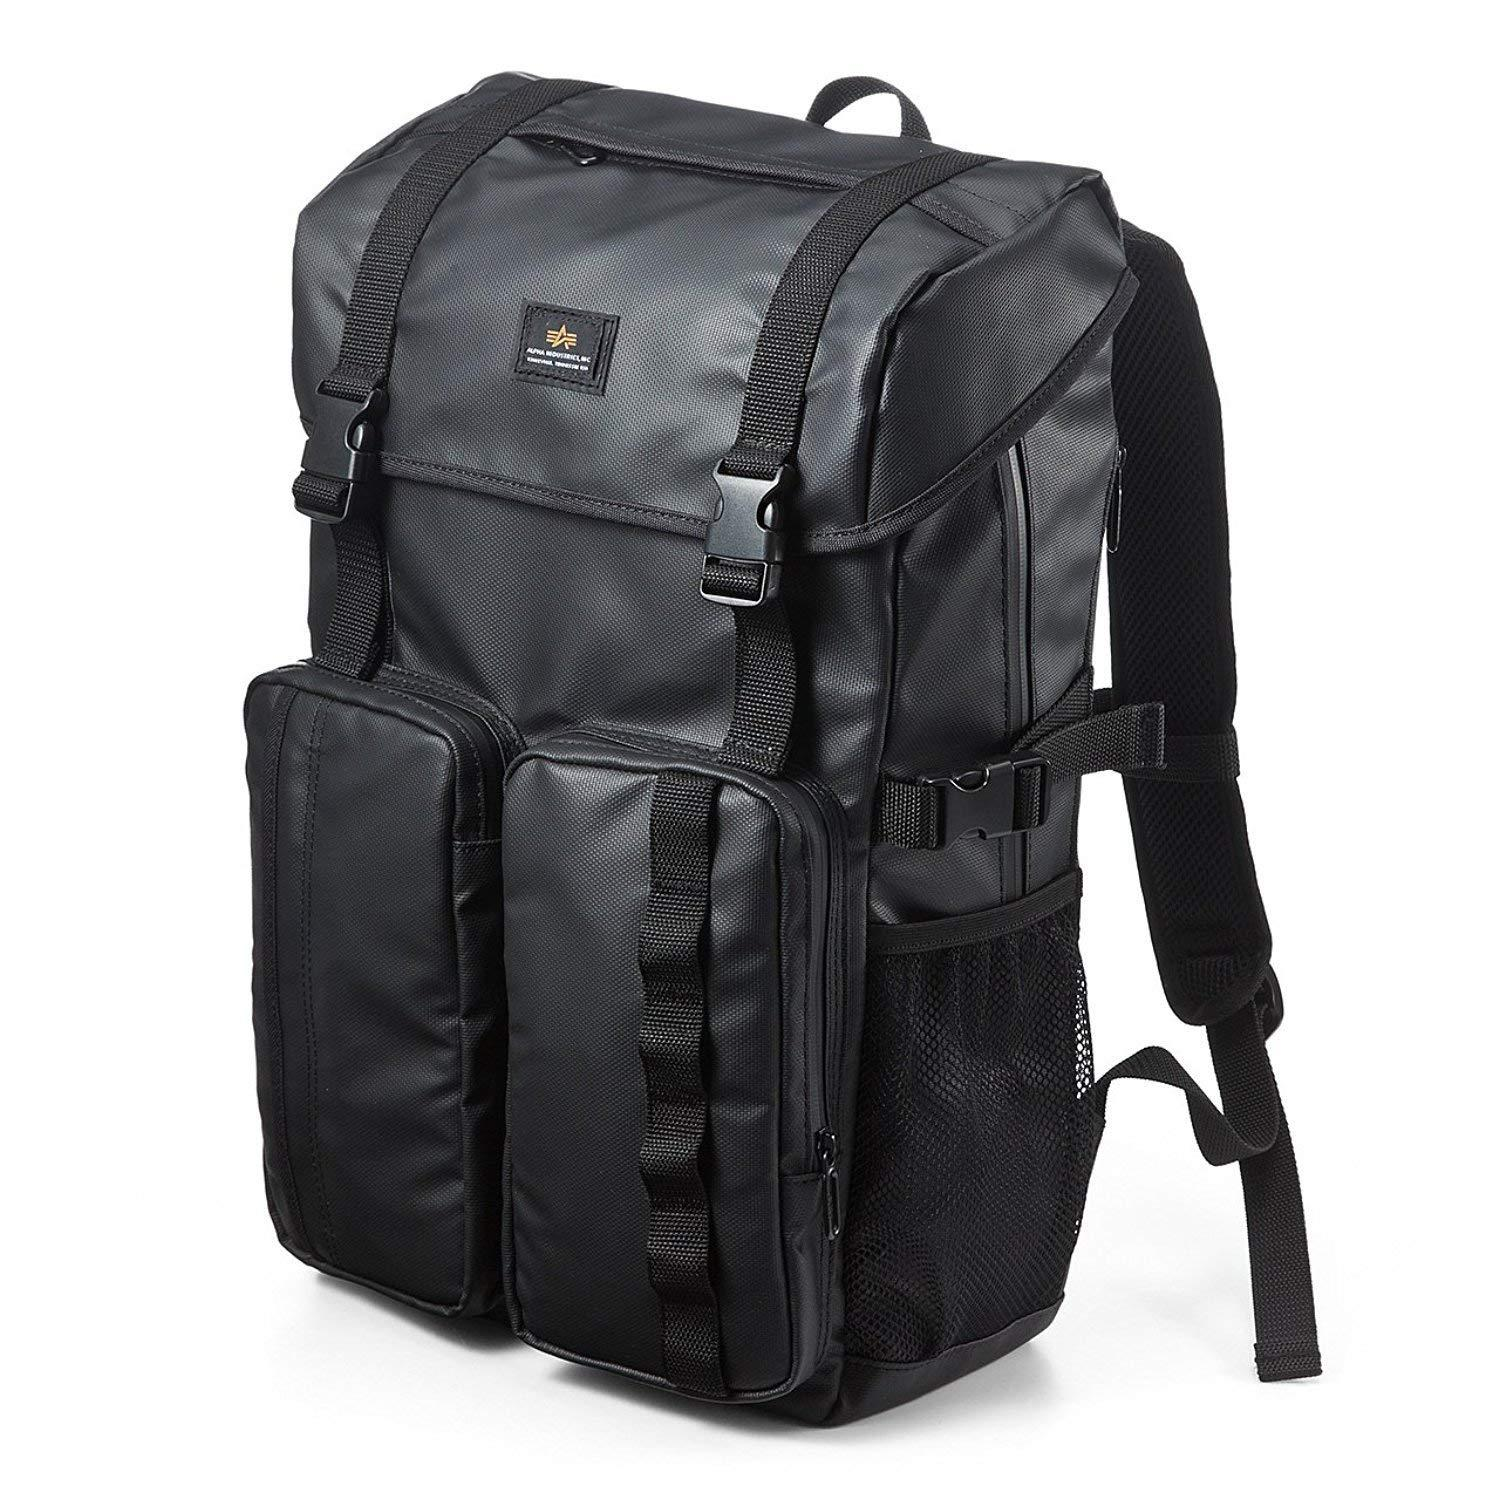 26eb965f89f Alpha Industries Japanese Quality Waterproof Backpack Large Capacity BP  009, comes with free gift